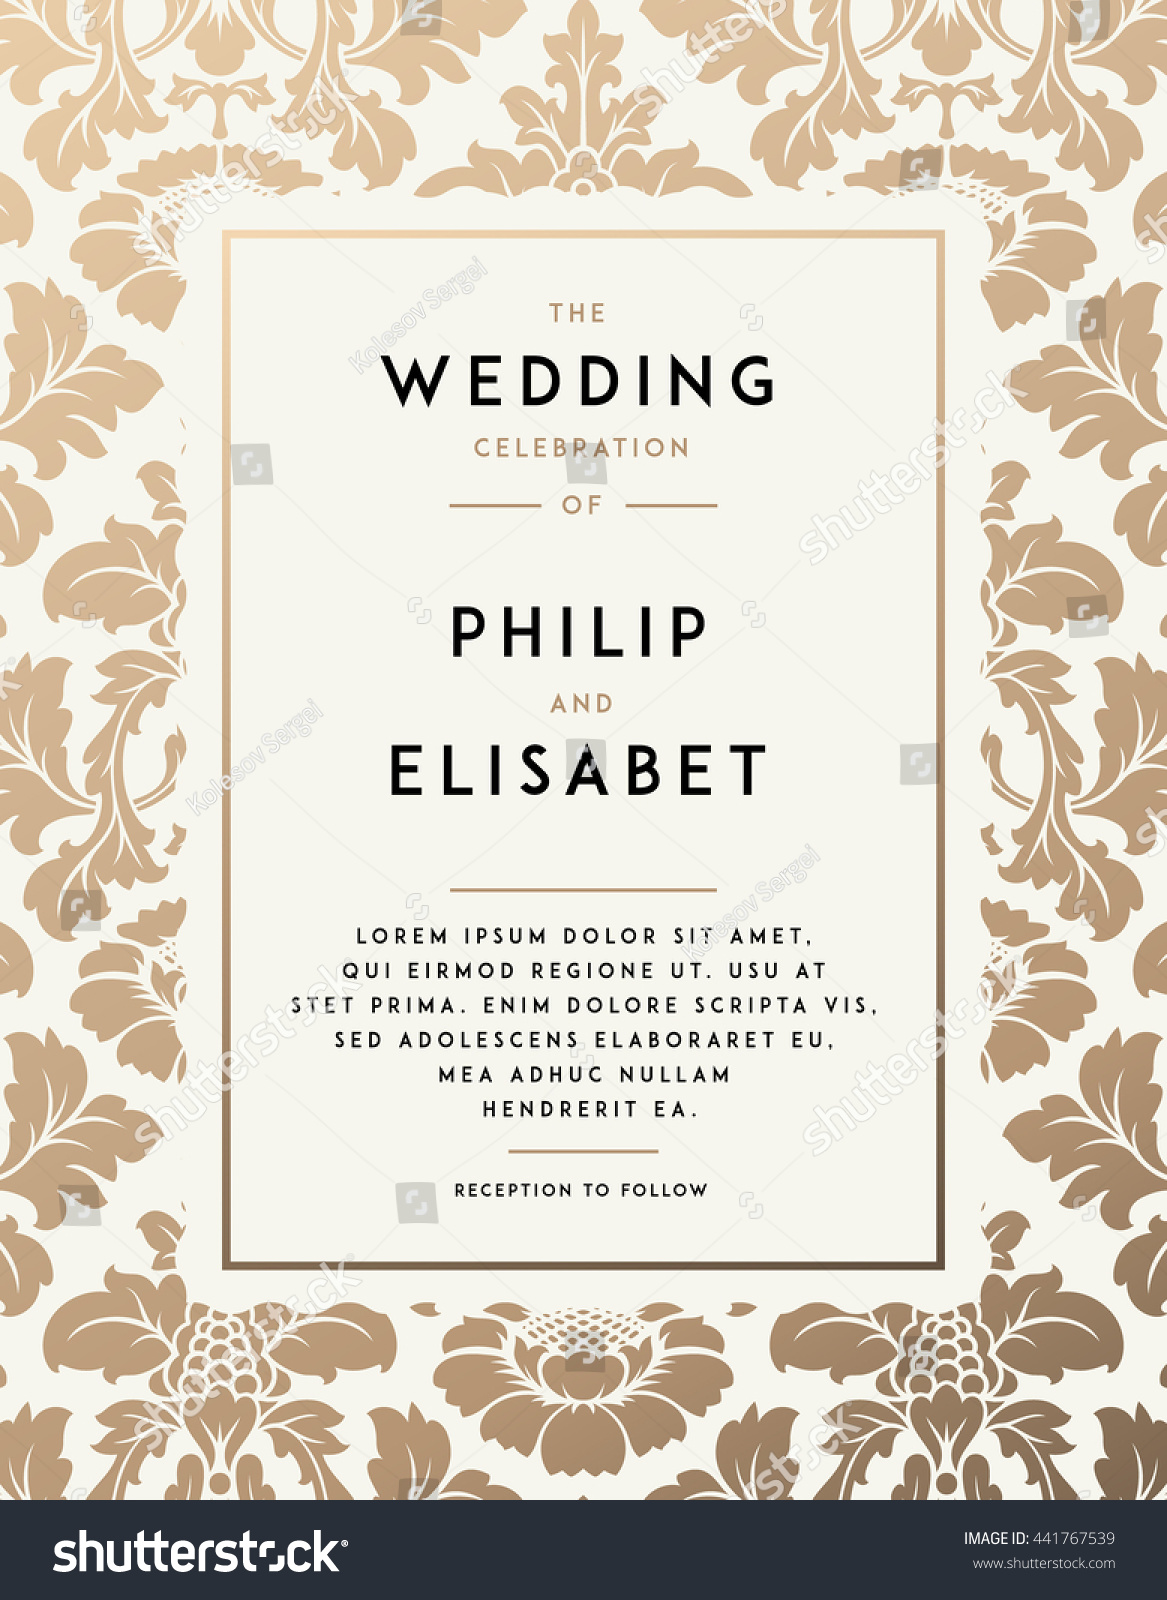 Vintage wedding invitation template modern design em vetor stock vintage wedding invitation template modern design wedding invitation design with damask background tradition stopboris Image collections